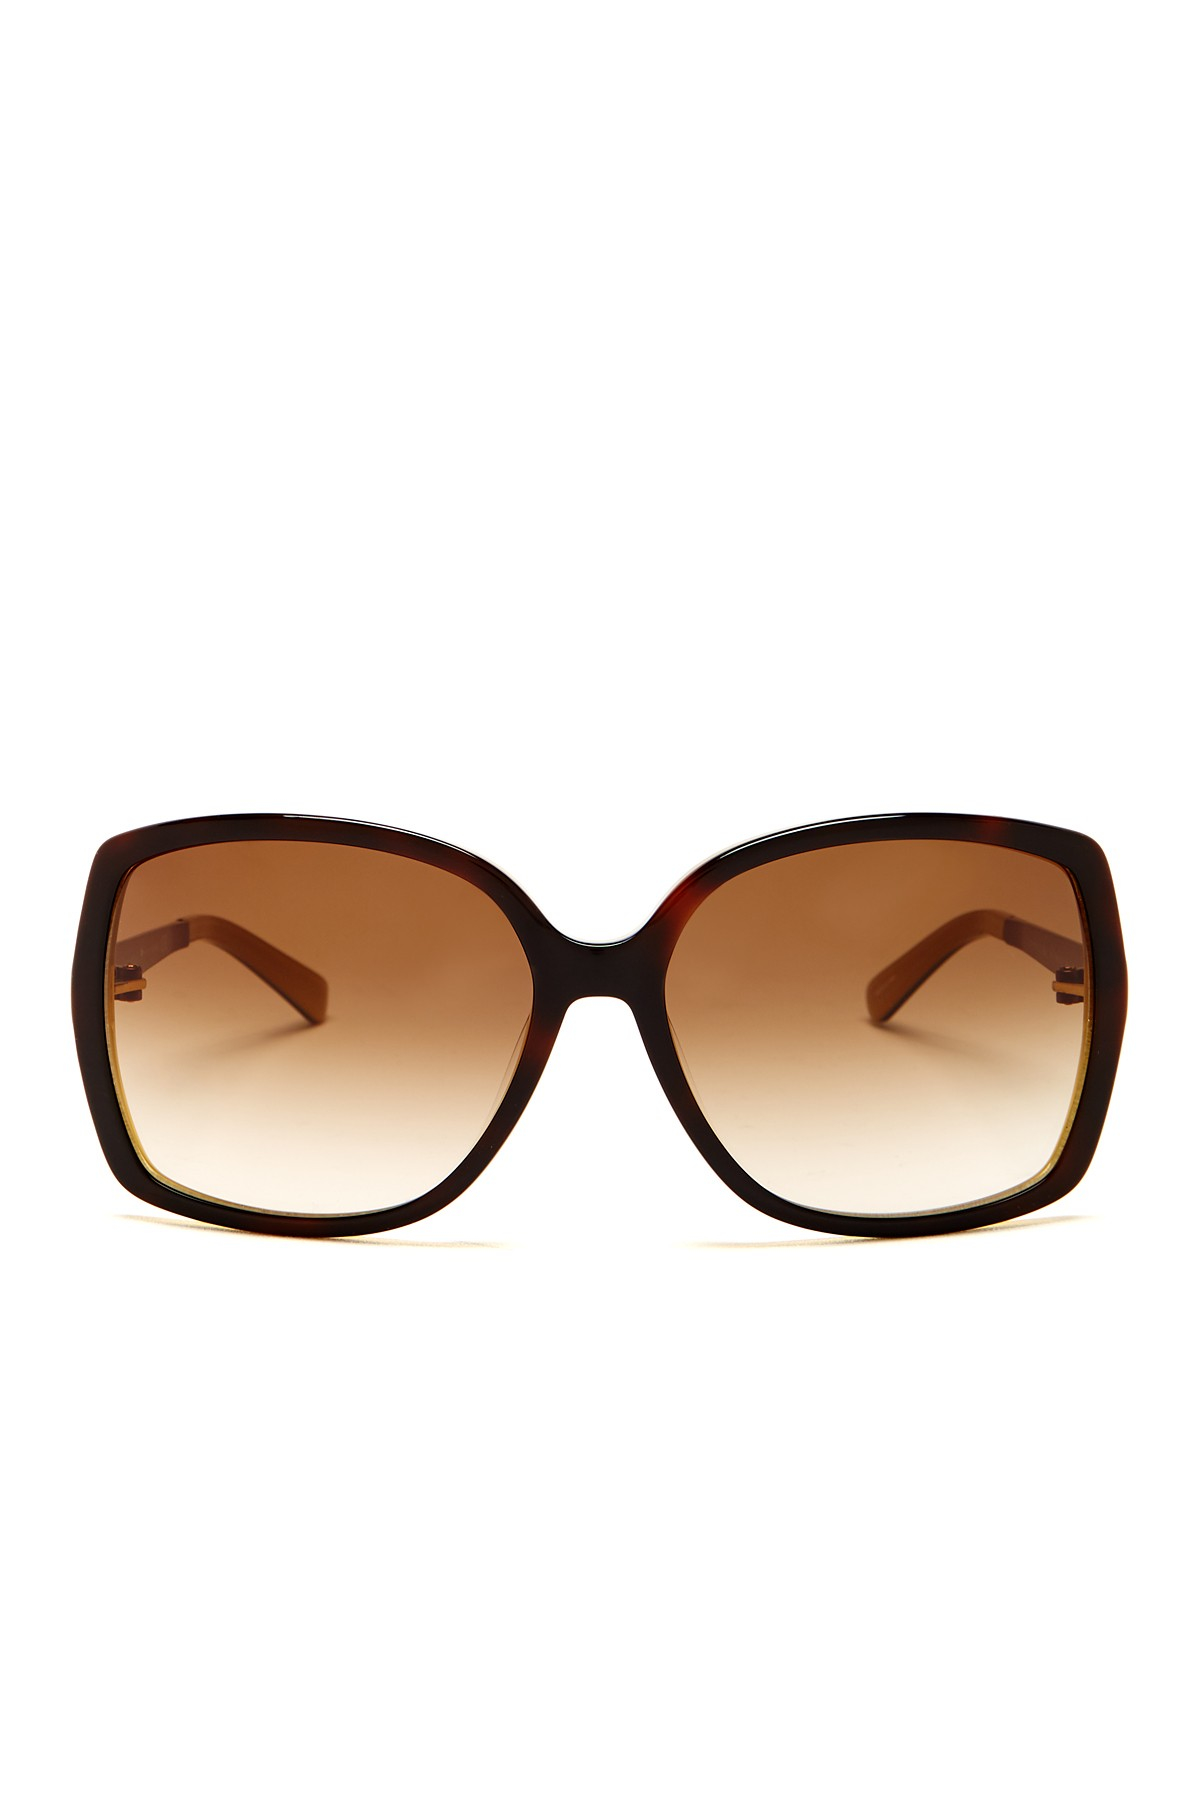 ab2b546ac7 Lyst - Kate Spade Women s Darrys Oversized Sunglasses in Brown